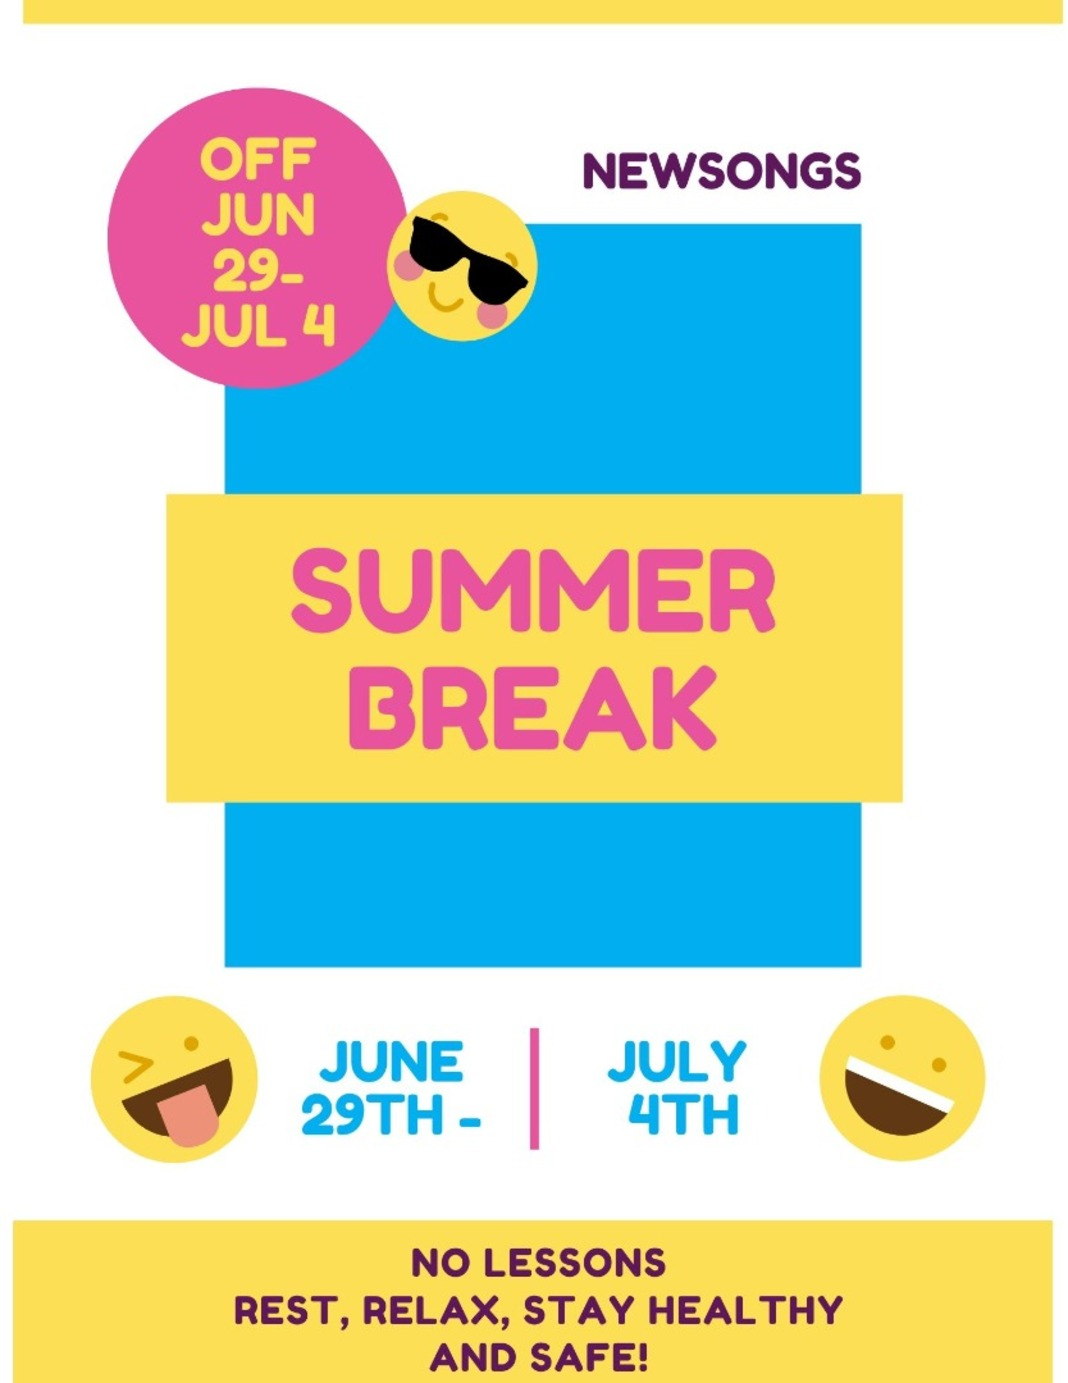 Music Lesson Summer Break is coming up! Image